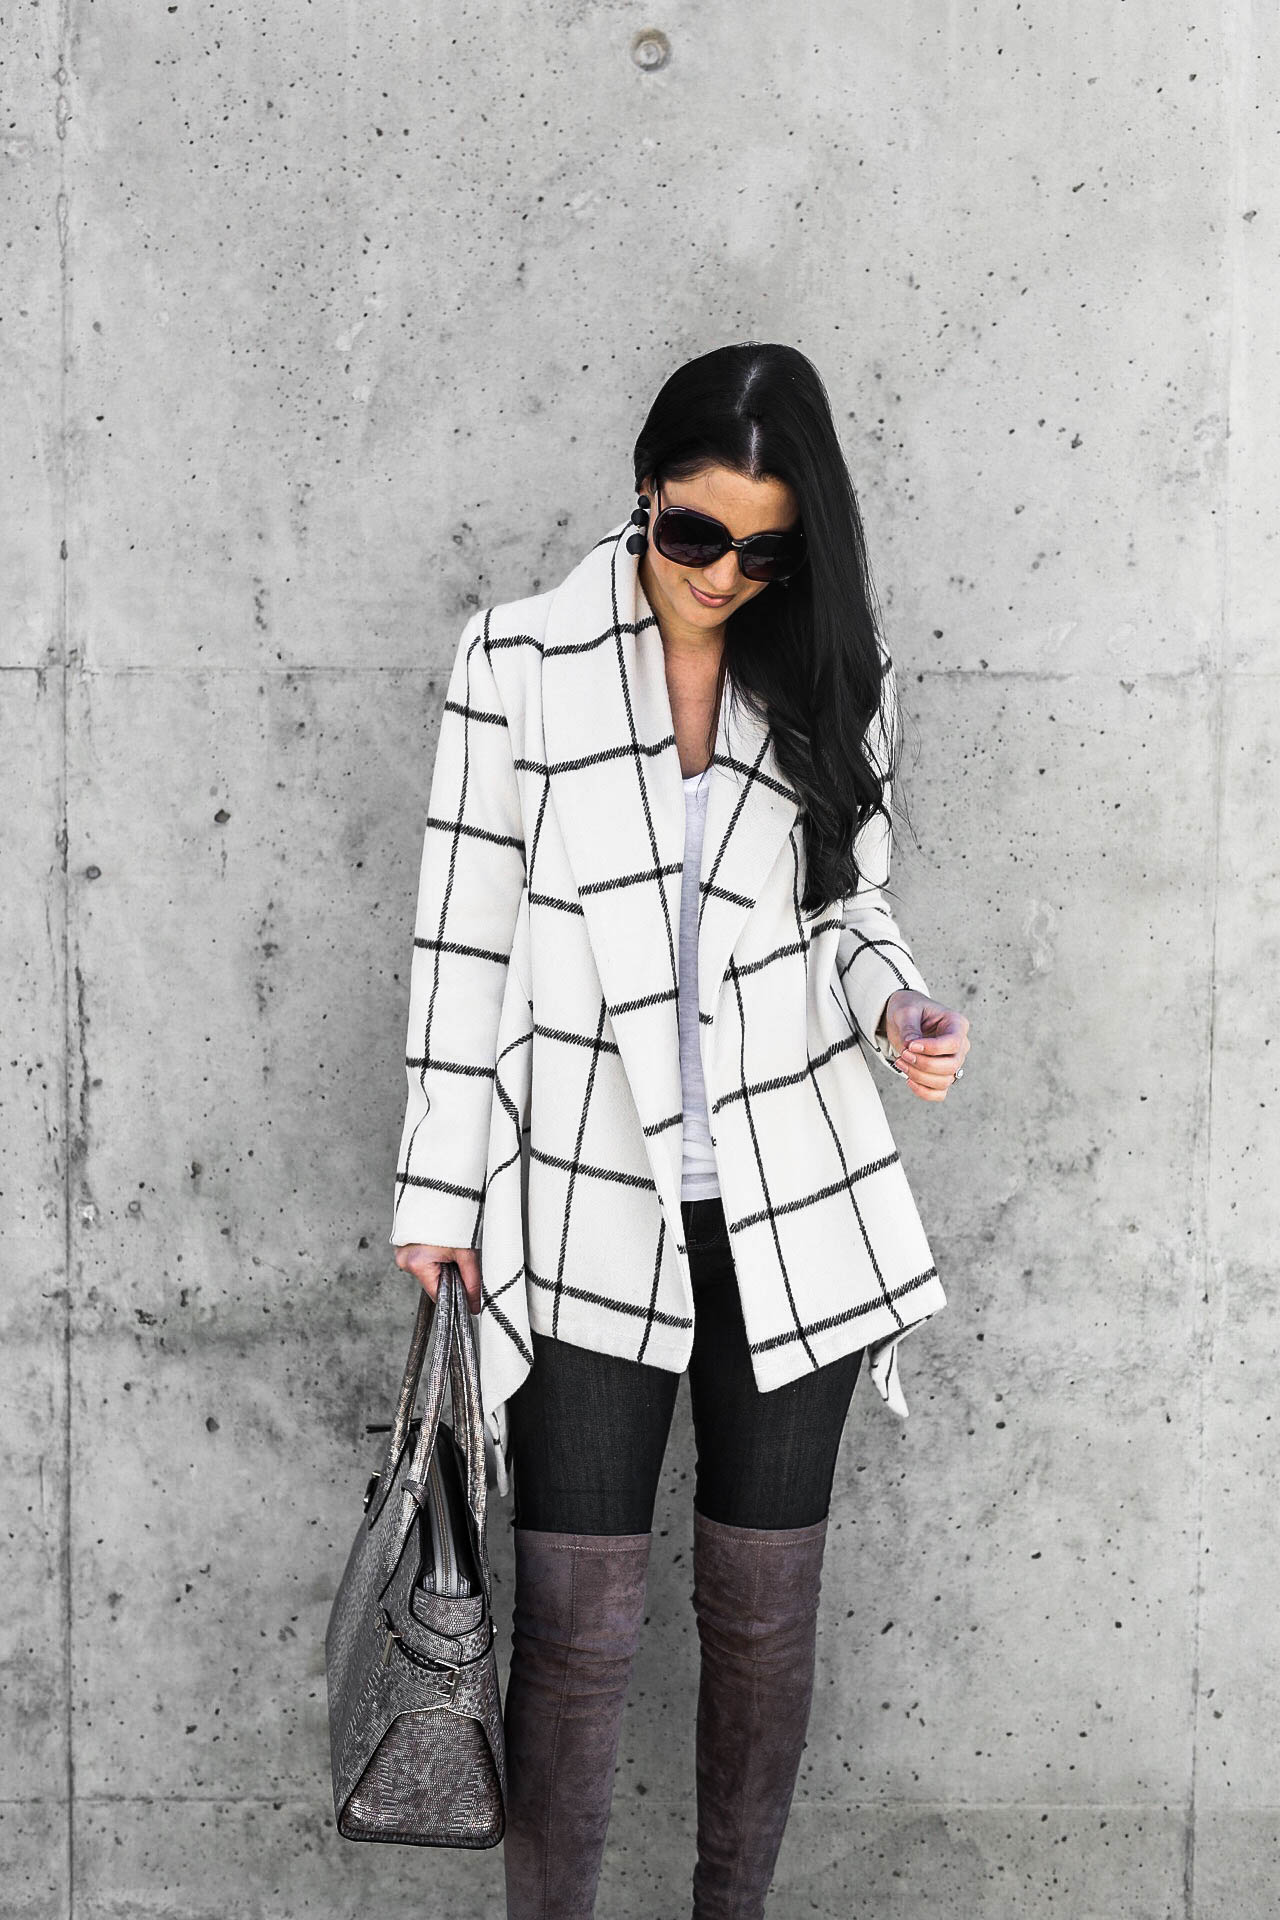 12 Wrap Coats Inspired by Meghan Markle's Engagement Outfit | how to style a wrap coat | wrap coat outfit ideas | winter coats | winter fashion tips || Dressed to Kill #wrapcoat #wintercoats #winterstyle